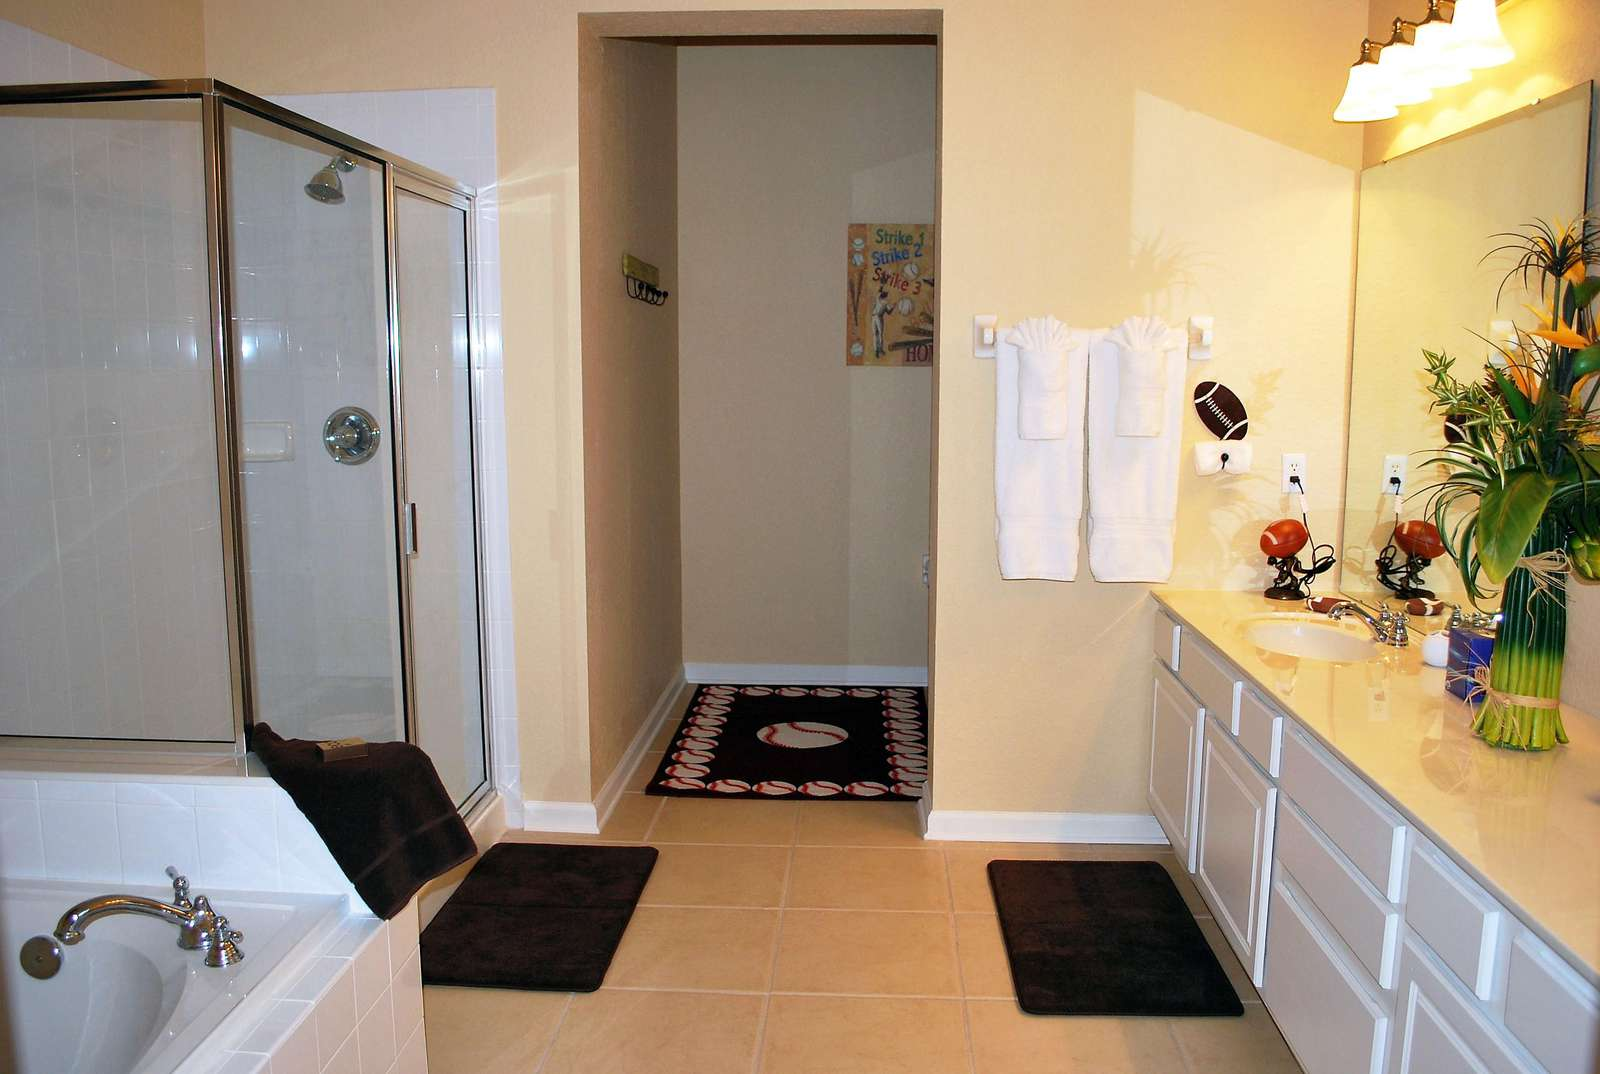 Just the master bathroom is the size of a regular hotel room!